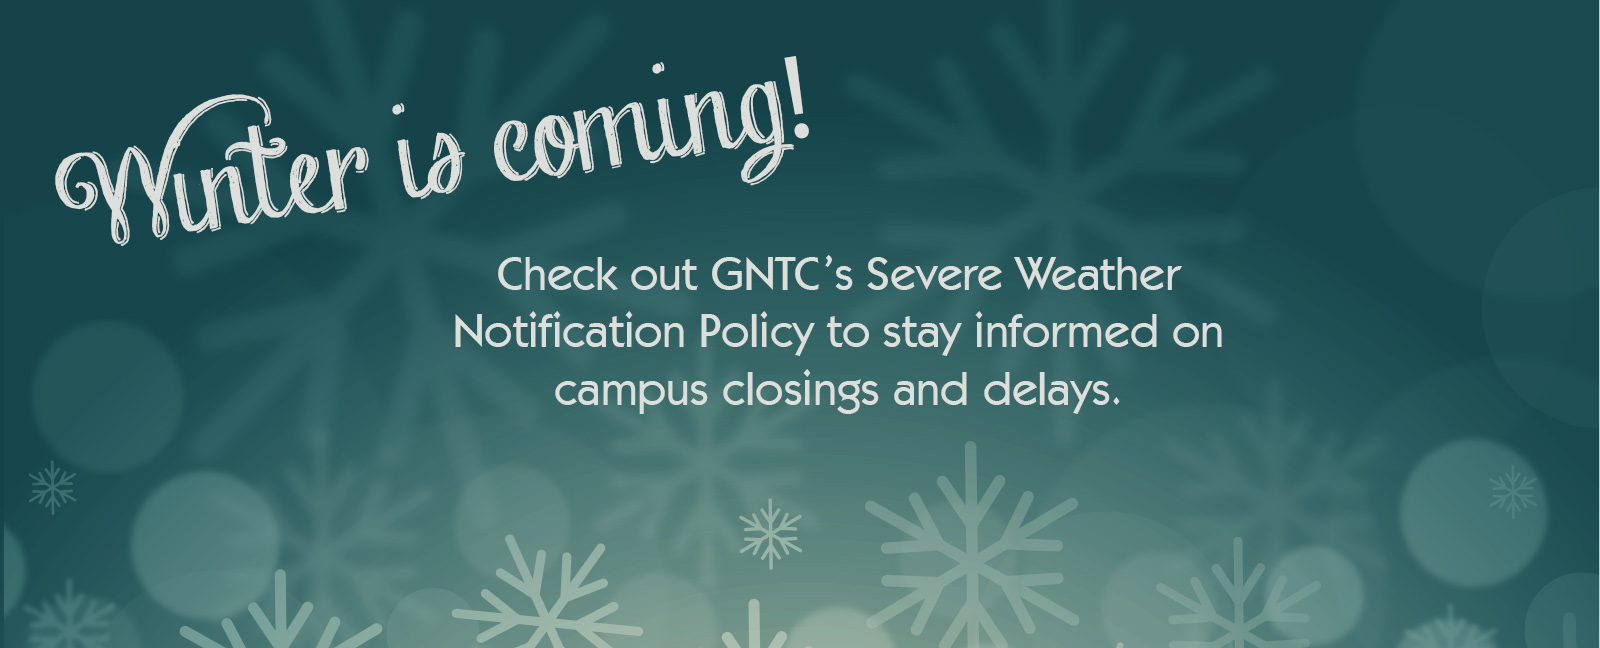 Winter is coming! Check out GNTC's Severe Weather Notification Policy to stay informed on campus closings and delays.